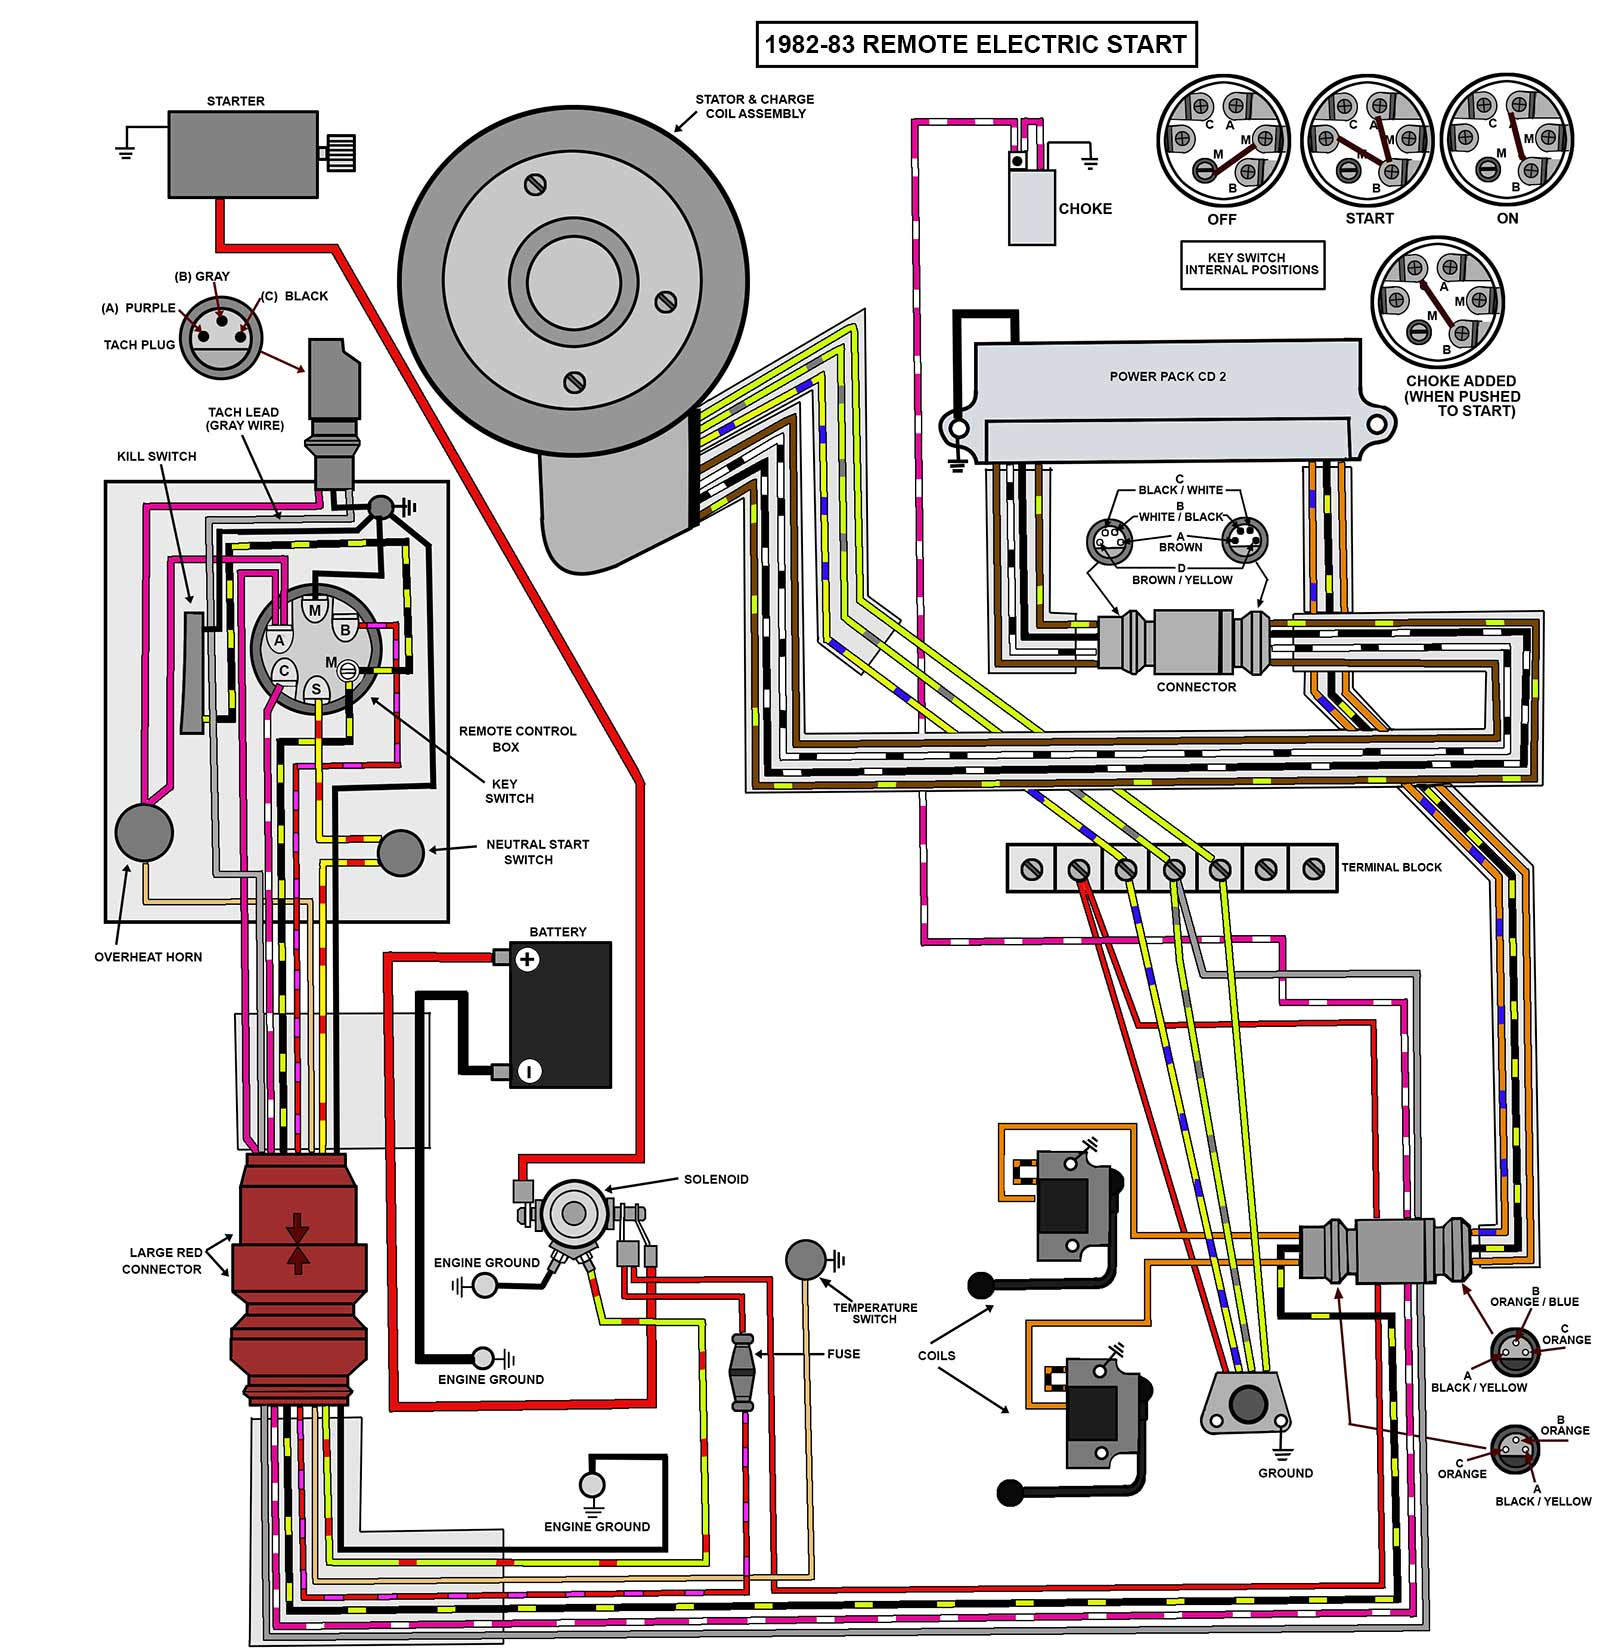 Omc V4 Wiring Diagram - Uxa.bbzbrighton.uk • Johnson Evinrude Ignition Coil Wiring Diagram on basic 12 volt wiring diagrams, 60 hp mercury outboard wiring diagrams, 85 hp evinrude outboard wiring diagrams, 5hp evinrude parts diagrams,